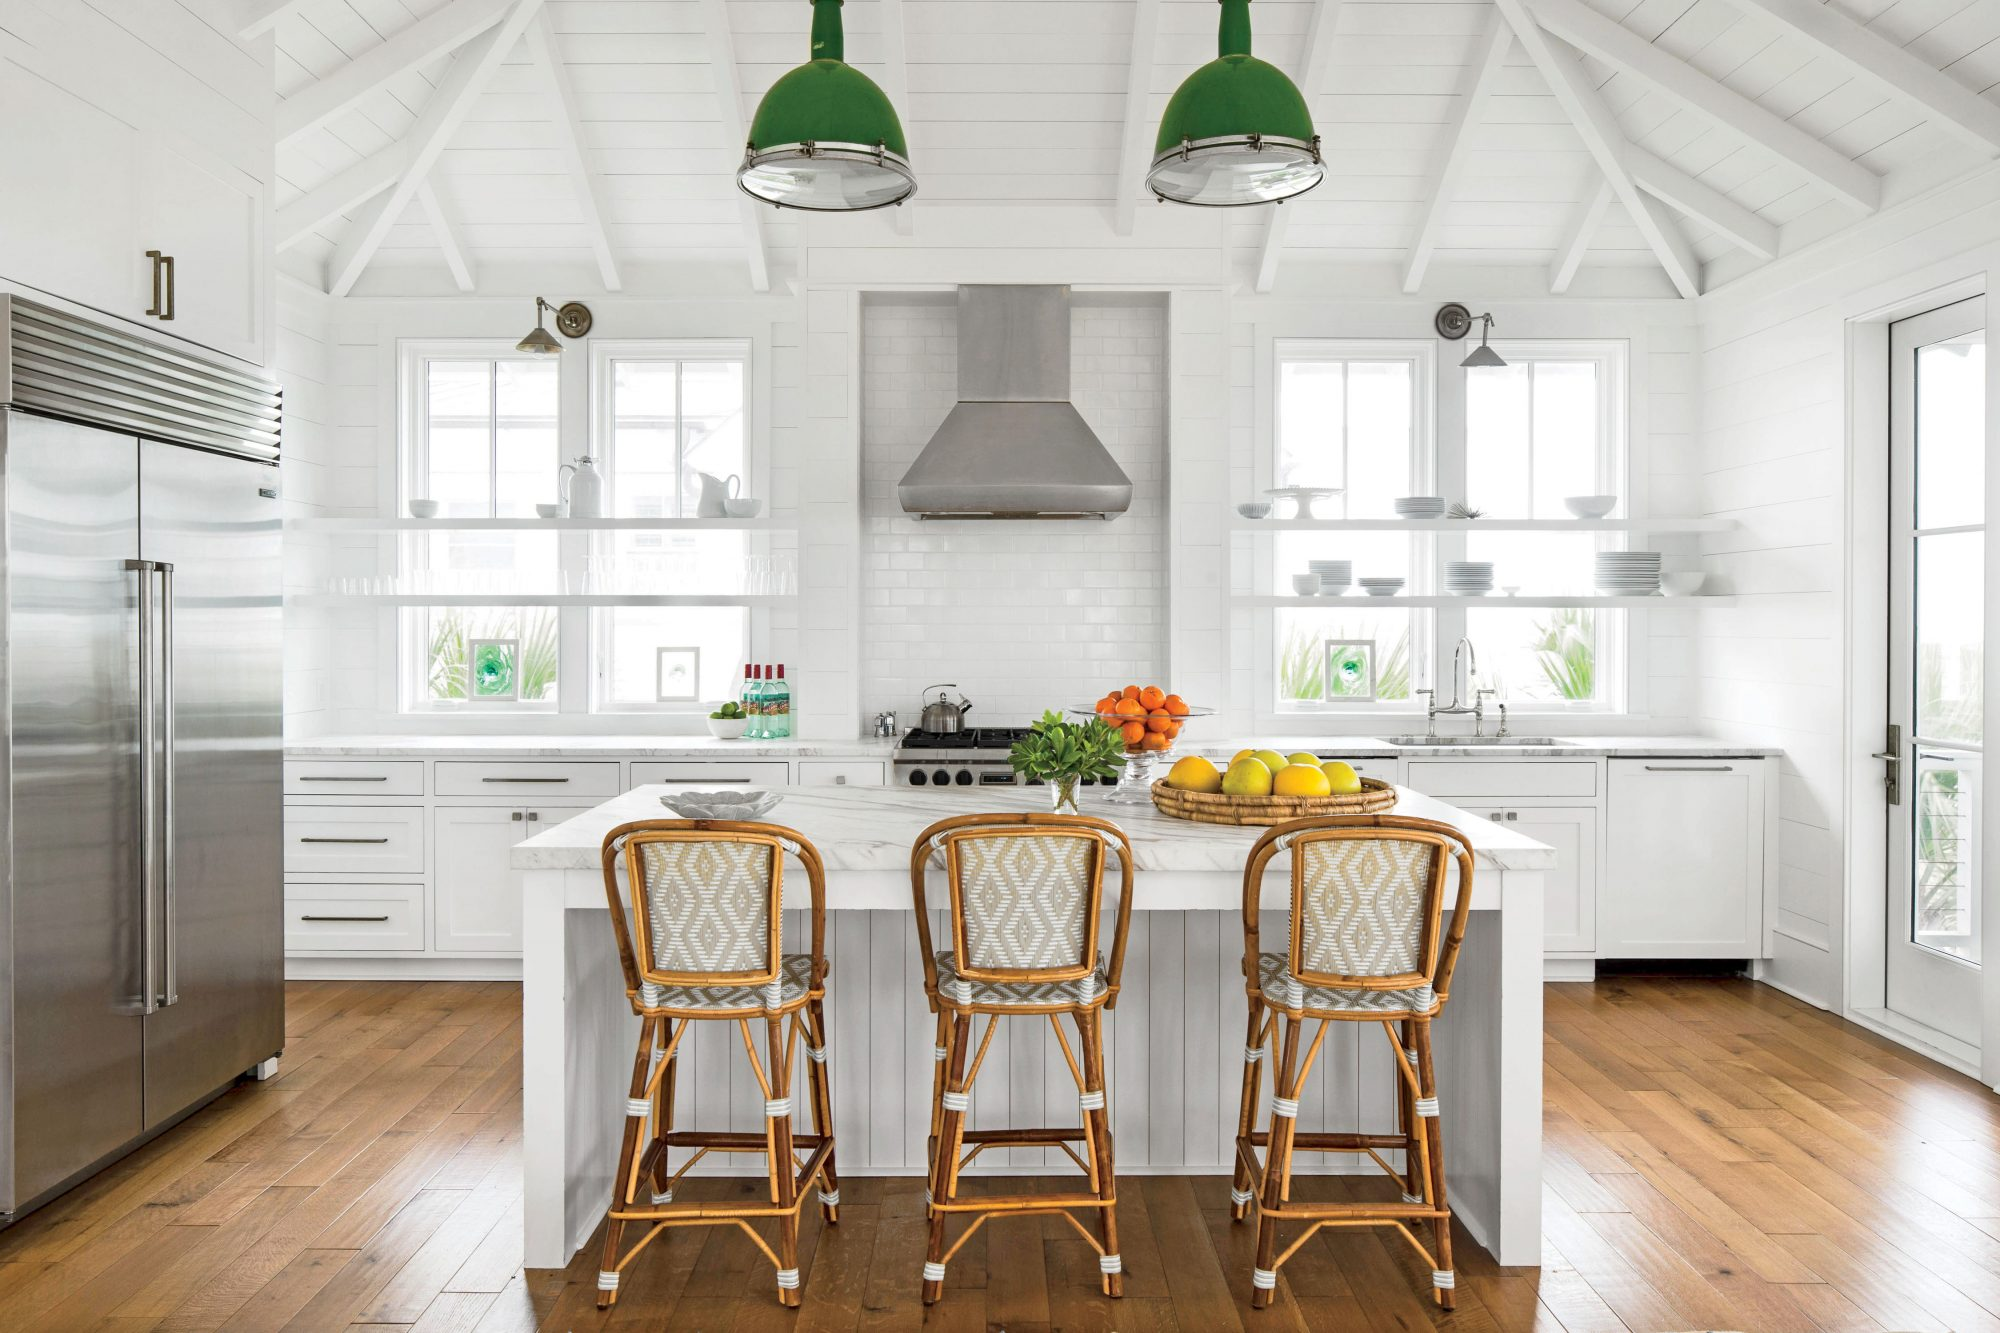 Reflecting tropical foliage just out the window, a pop of kelly green overhead via vintage gymnasium lights strung on rope gives this white kitchen a welcome dose of island color.